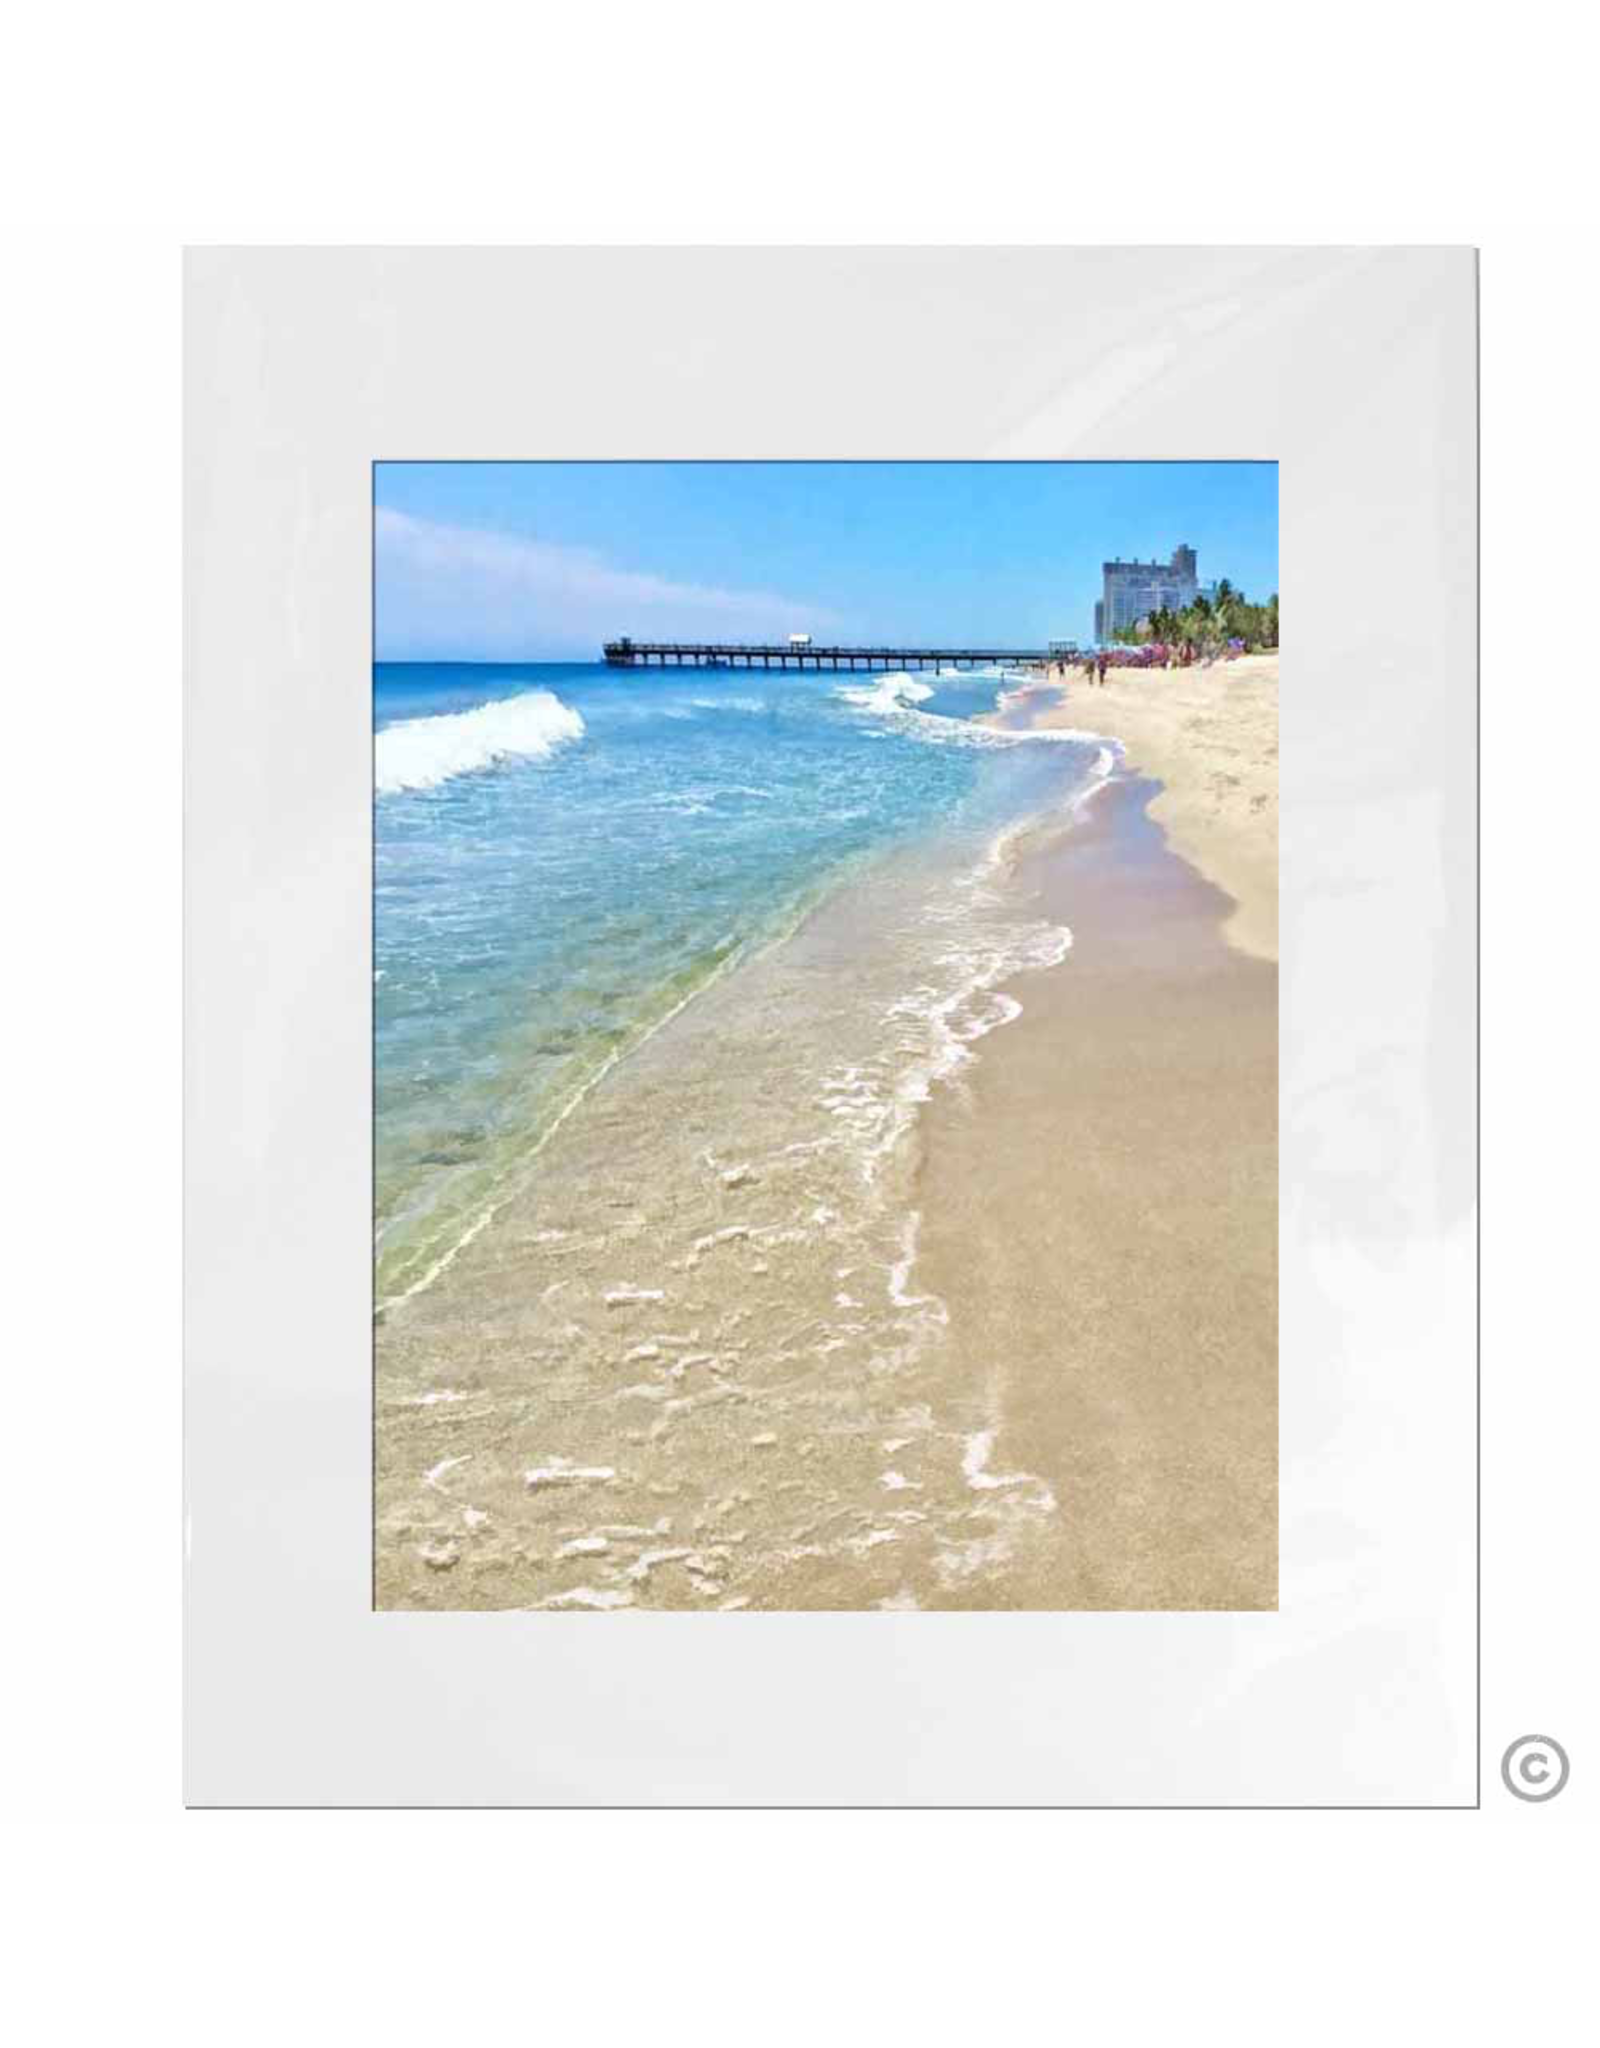 Maureen Terrien Photography Art Print Shoreline 11x14 - 8x10 Matted